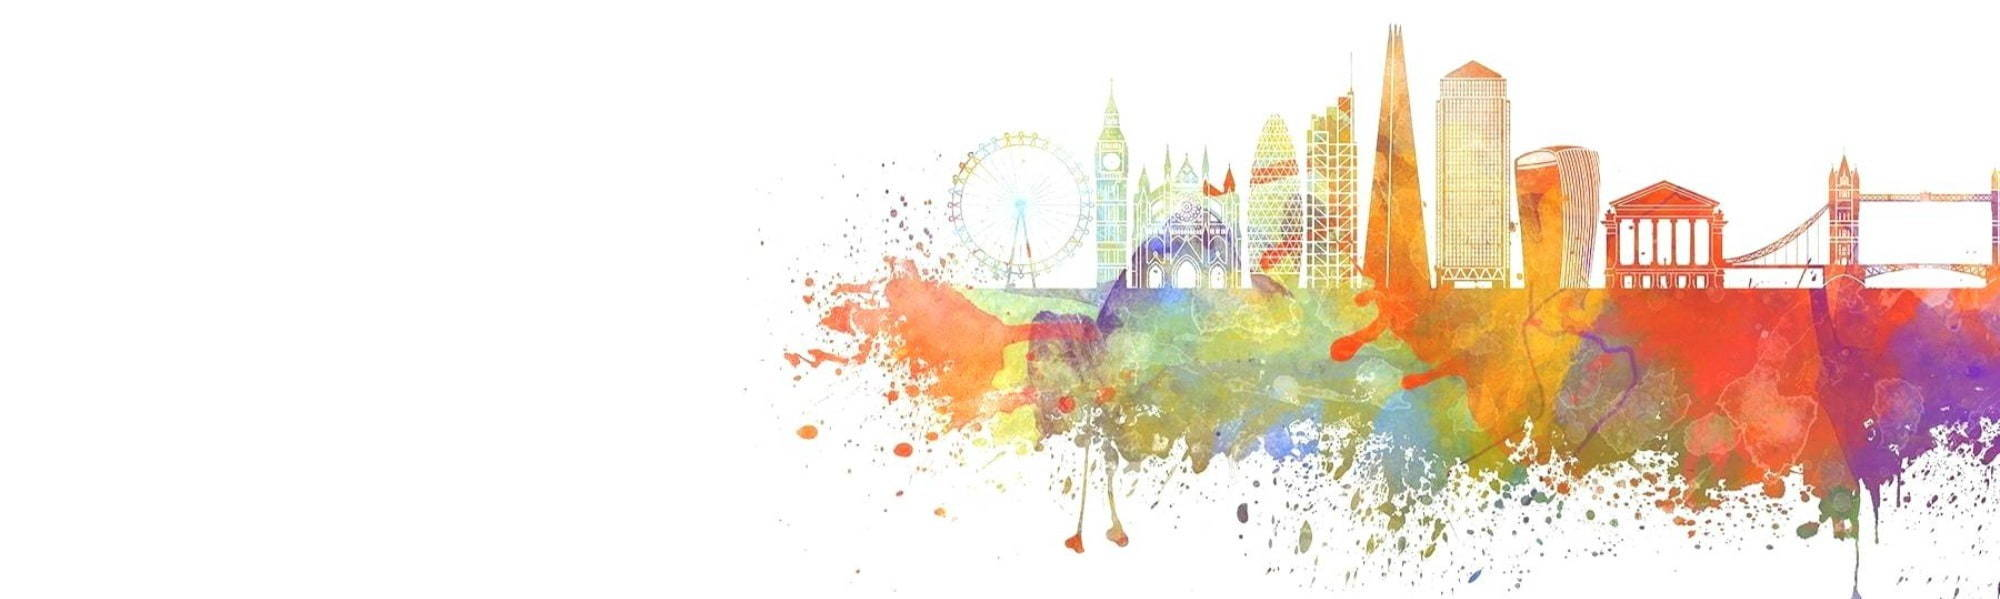 Watercolour Image of London Landmarks